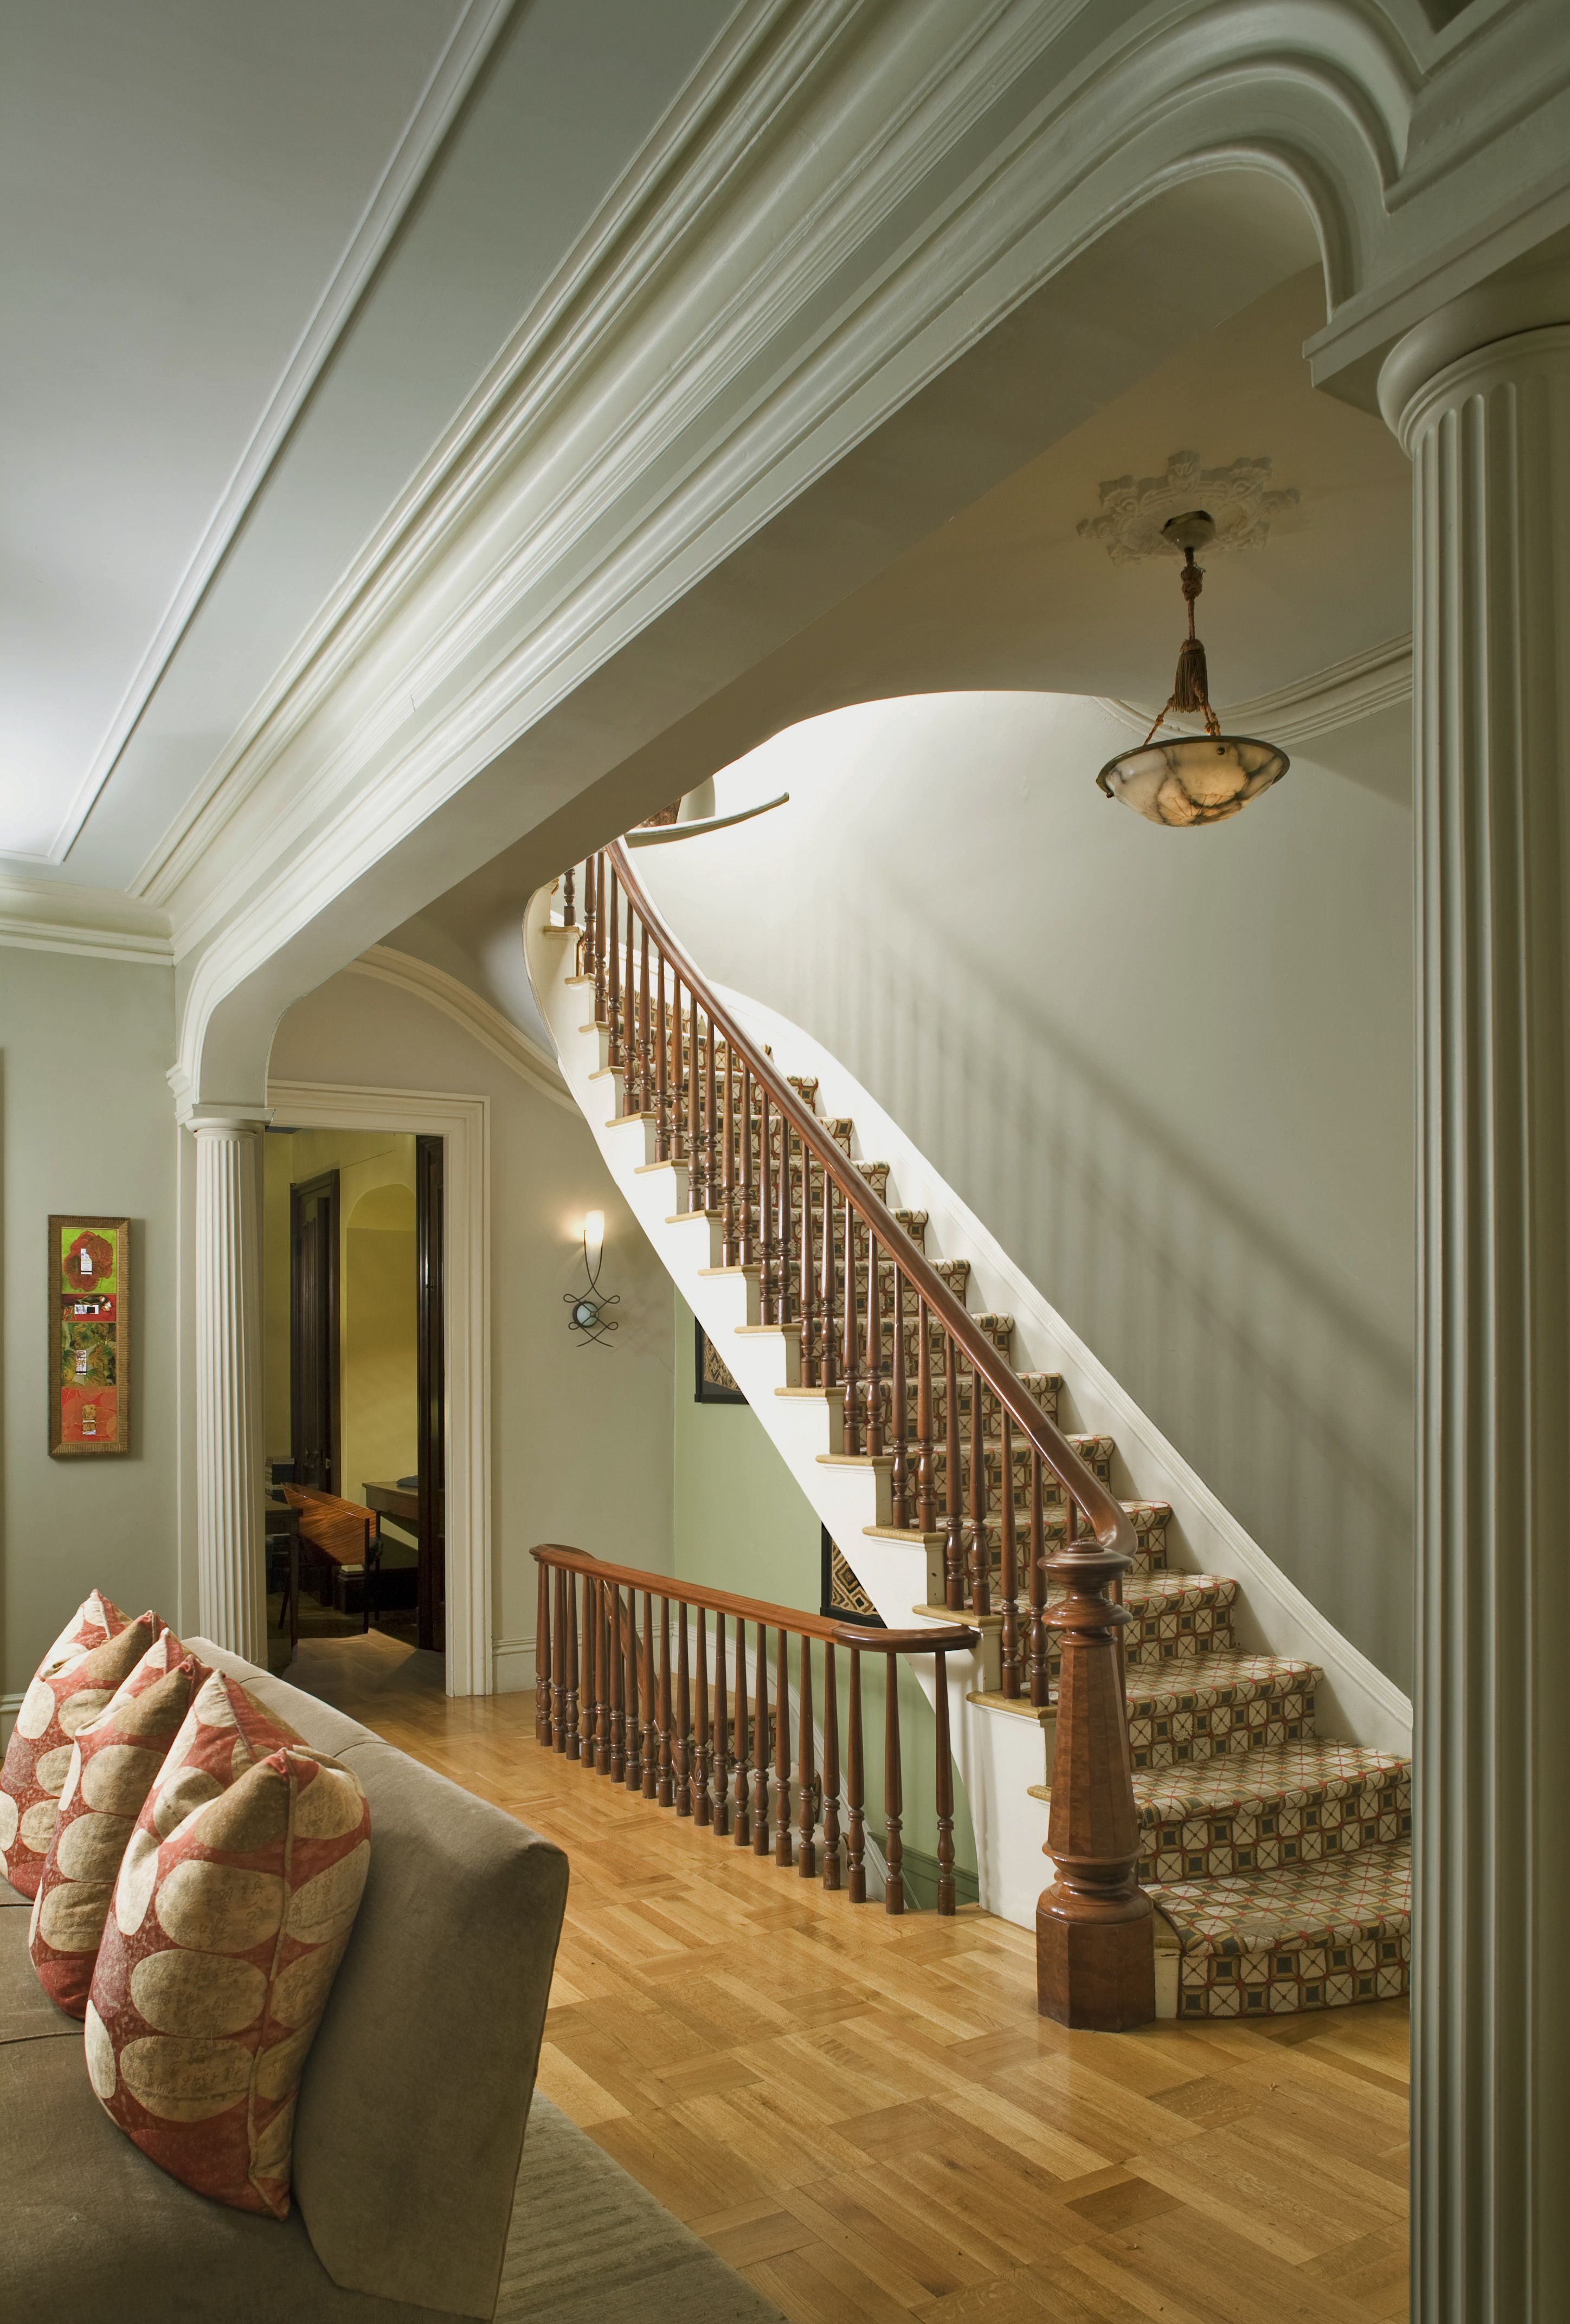 The Parlor Staircase at Clarendon Square Inn